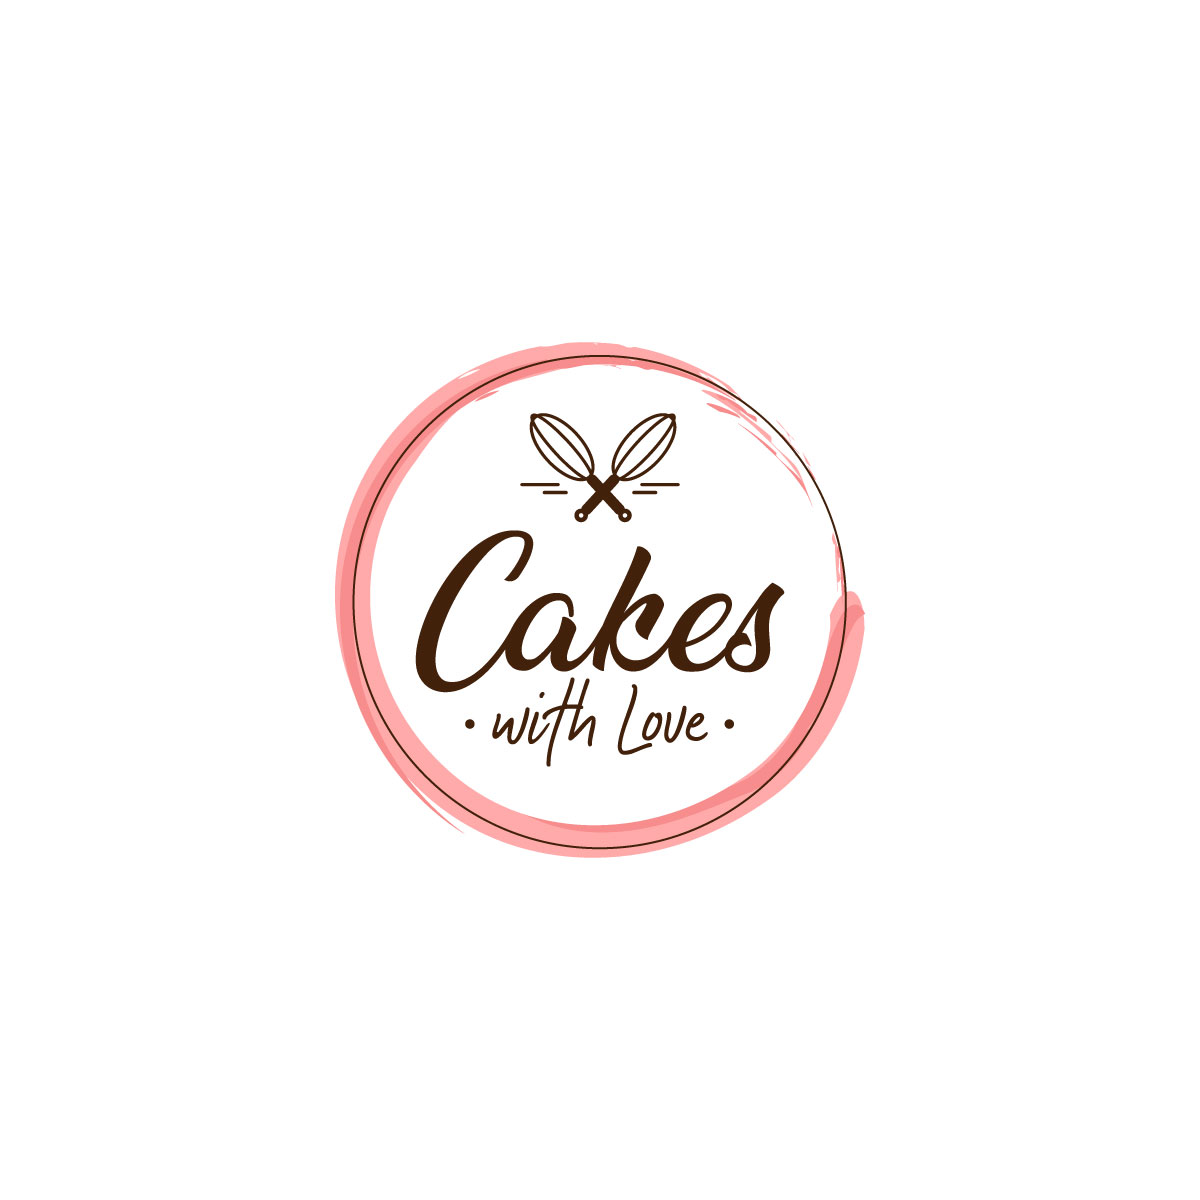 Modern, Elegant Logo Design for Cakes with Love by Arrow.